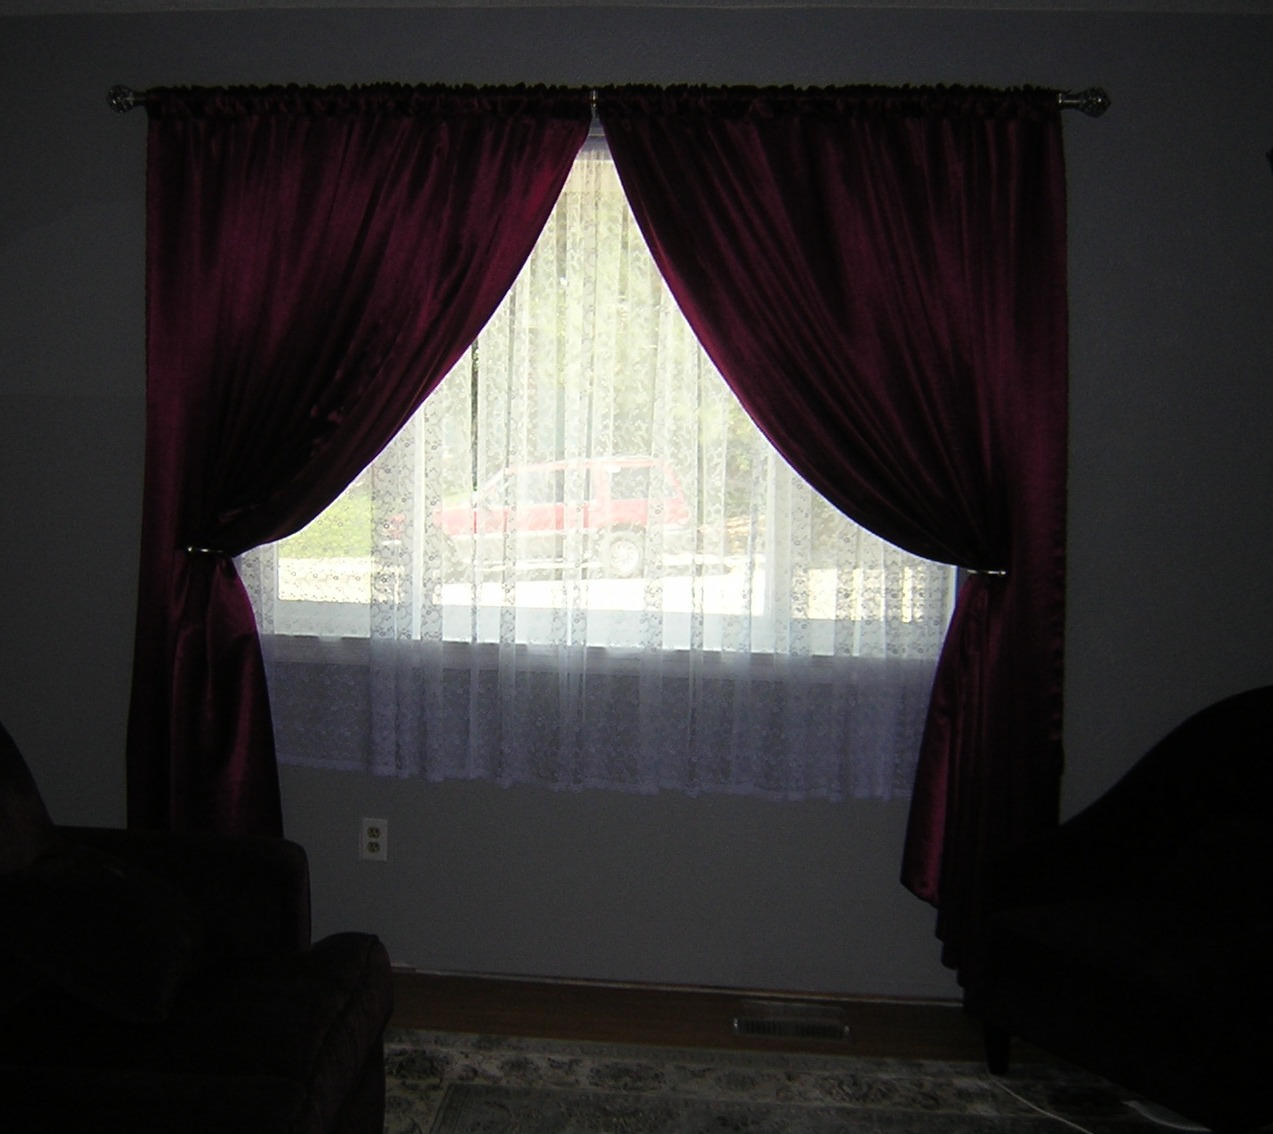 satin p panel curtains treatment crushed x to expand tailored curtain click window whisper